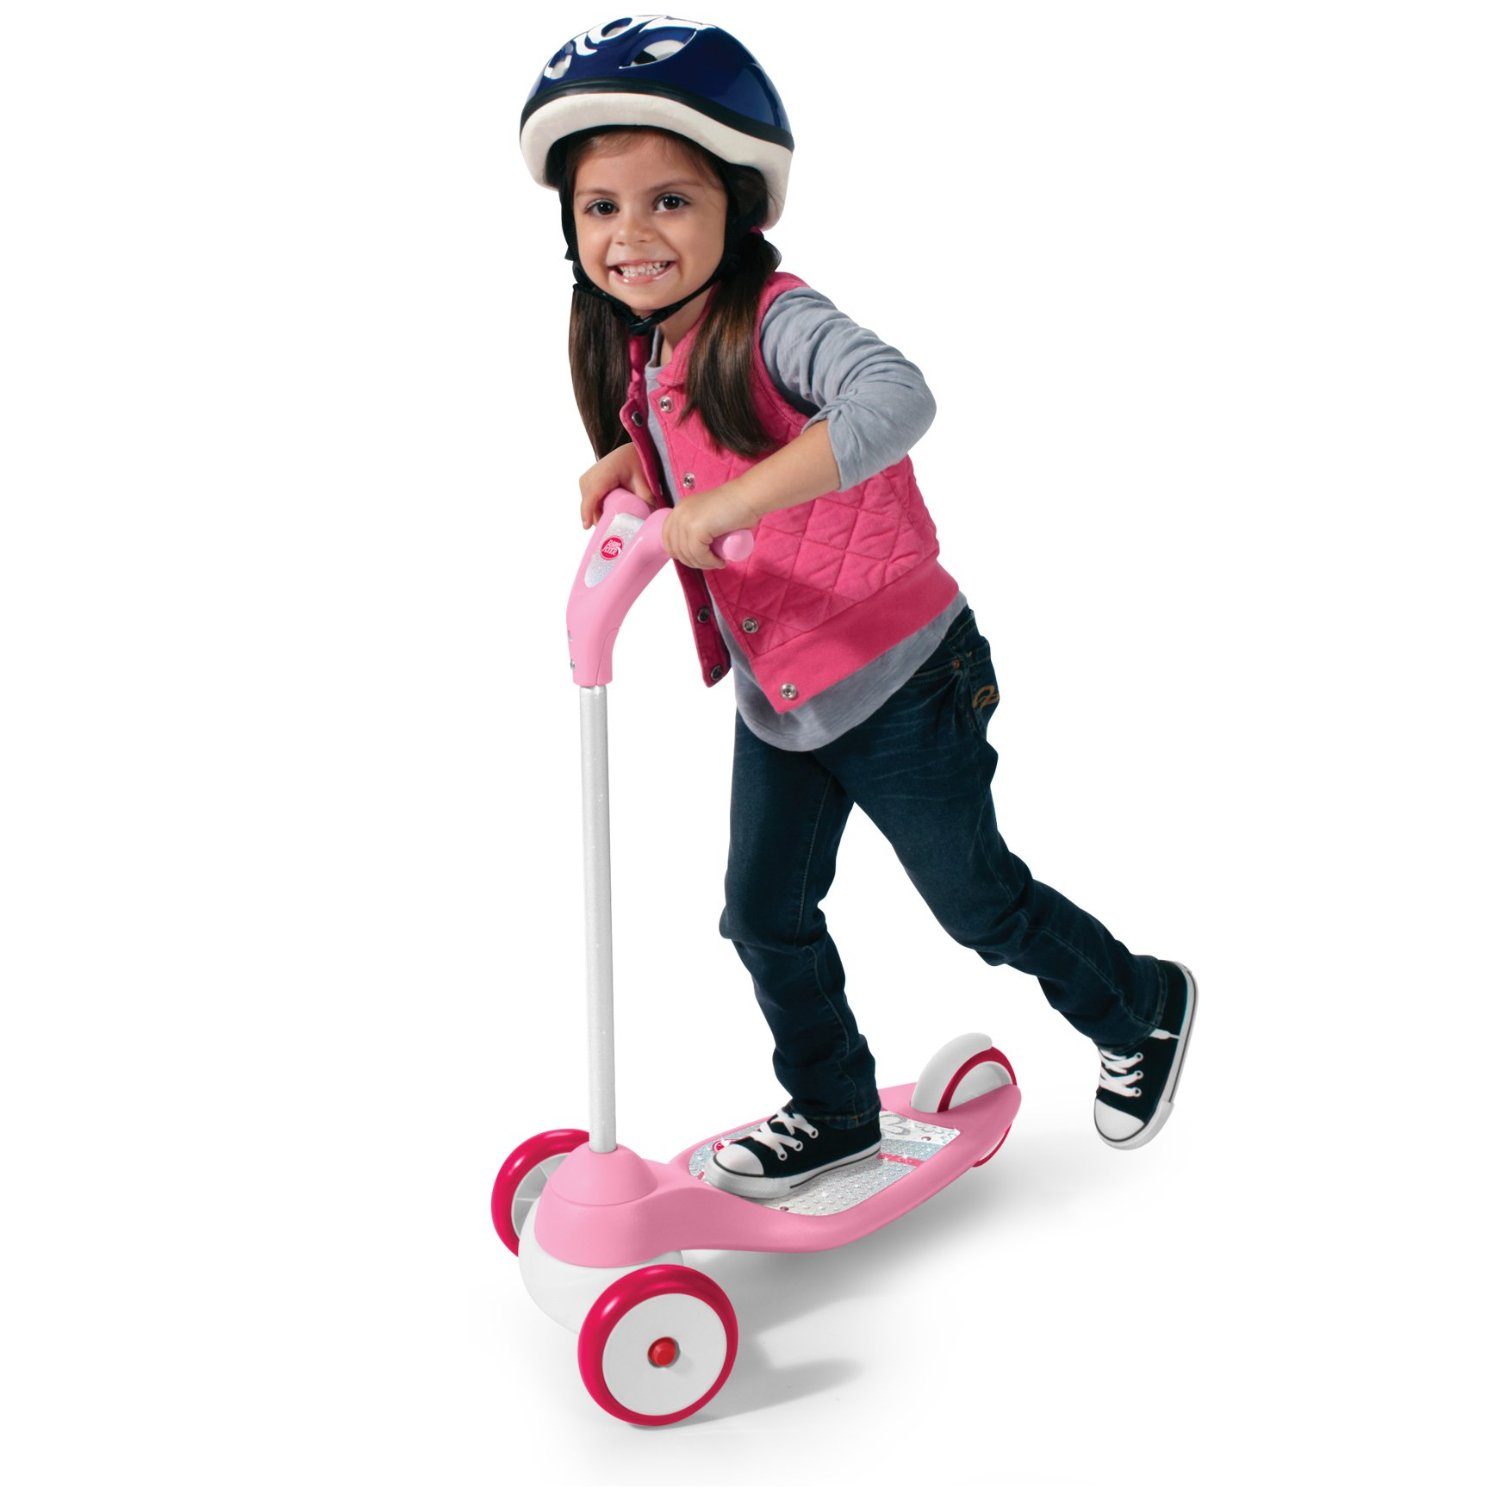 Radio Flyer My 1st Scooter Now 30% Off!!